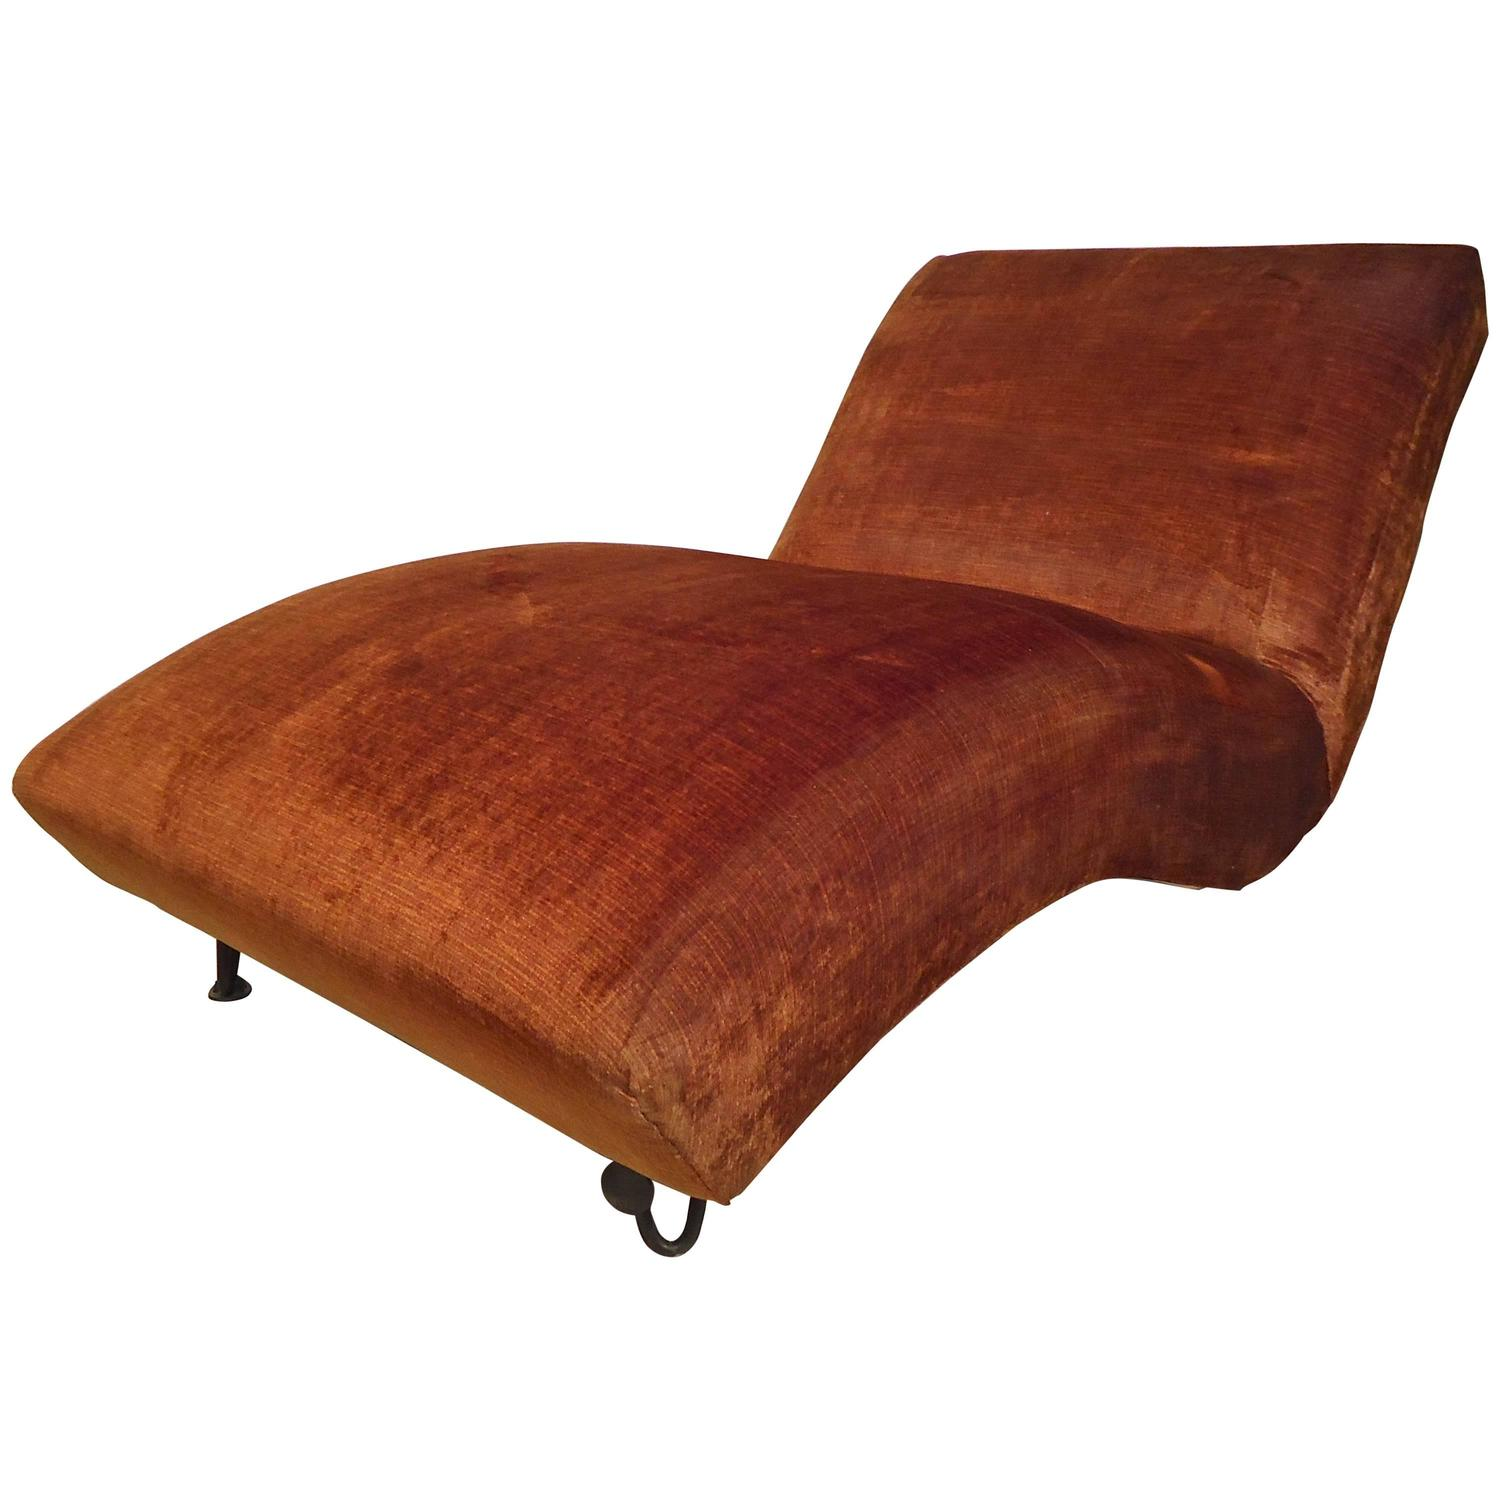 Vintage chaise longue for sale at 1stdibs for Antique chaise longue for sale